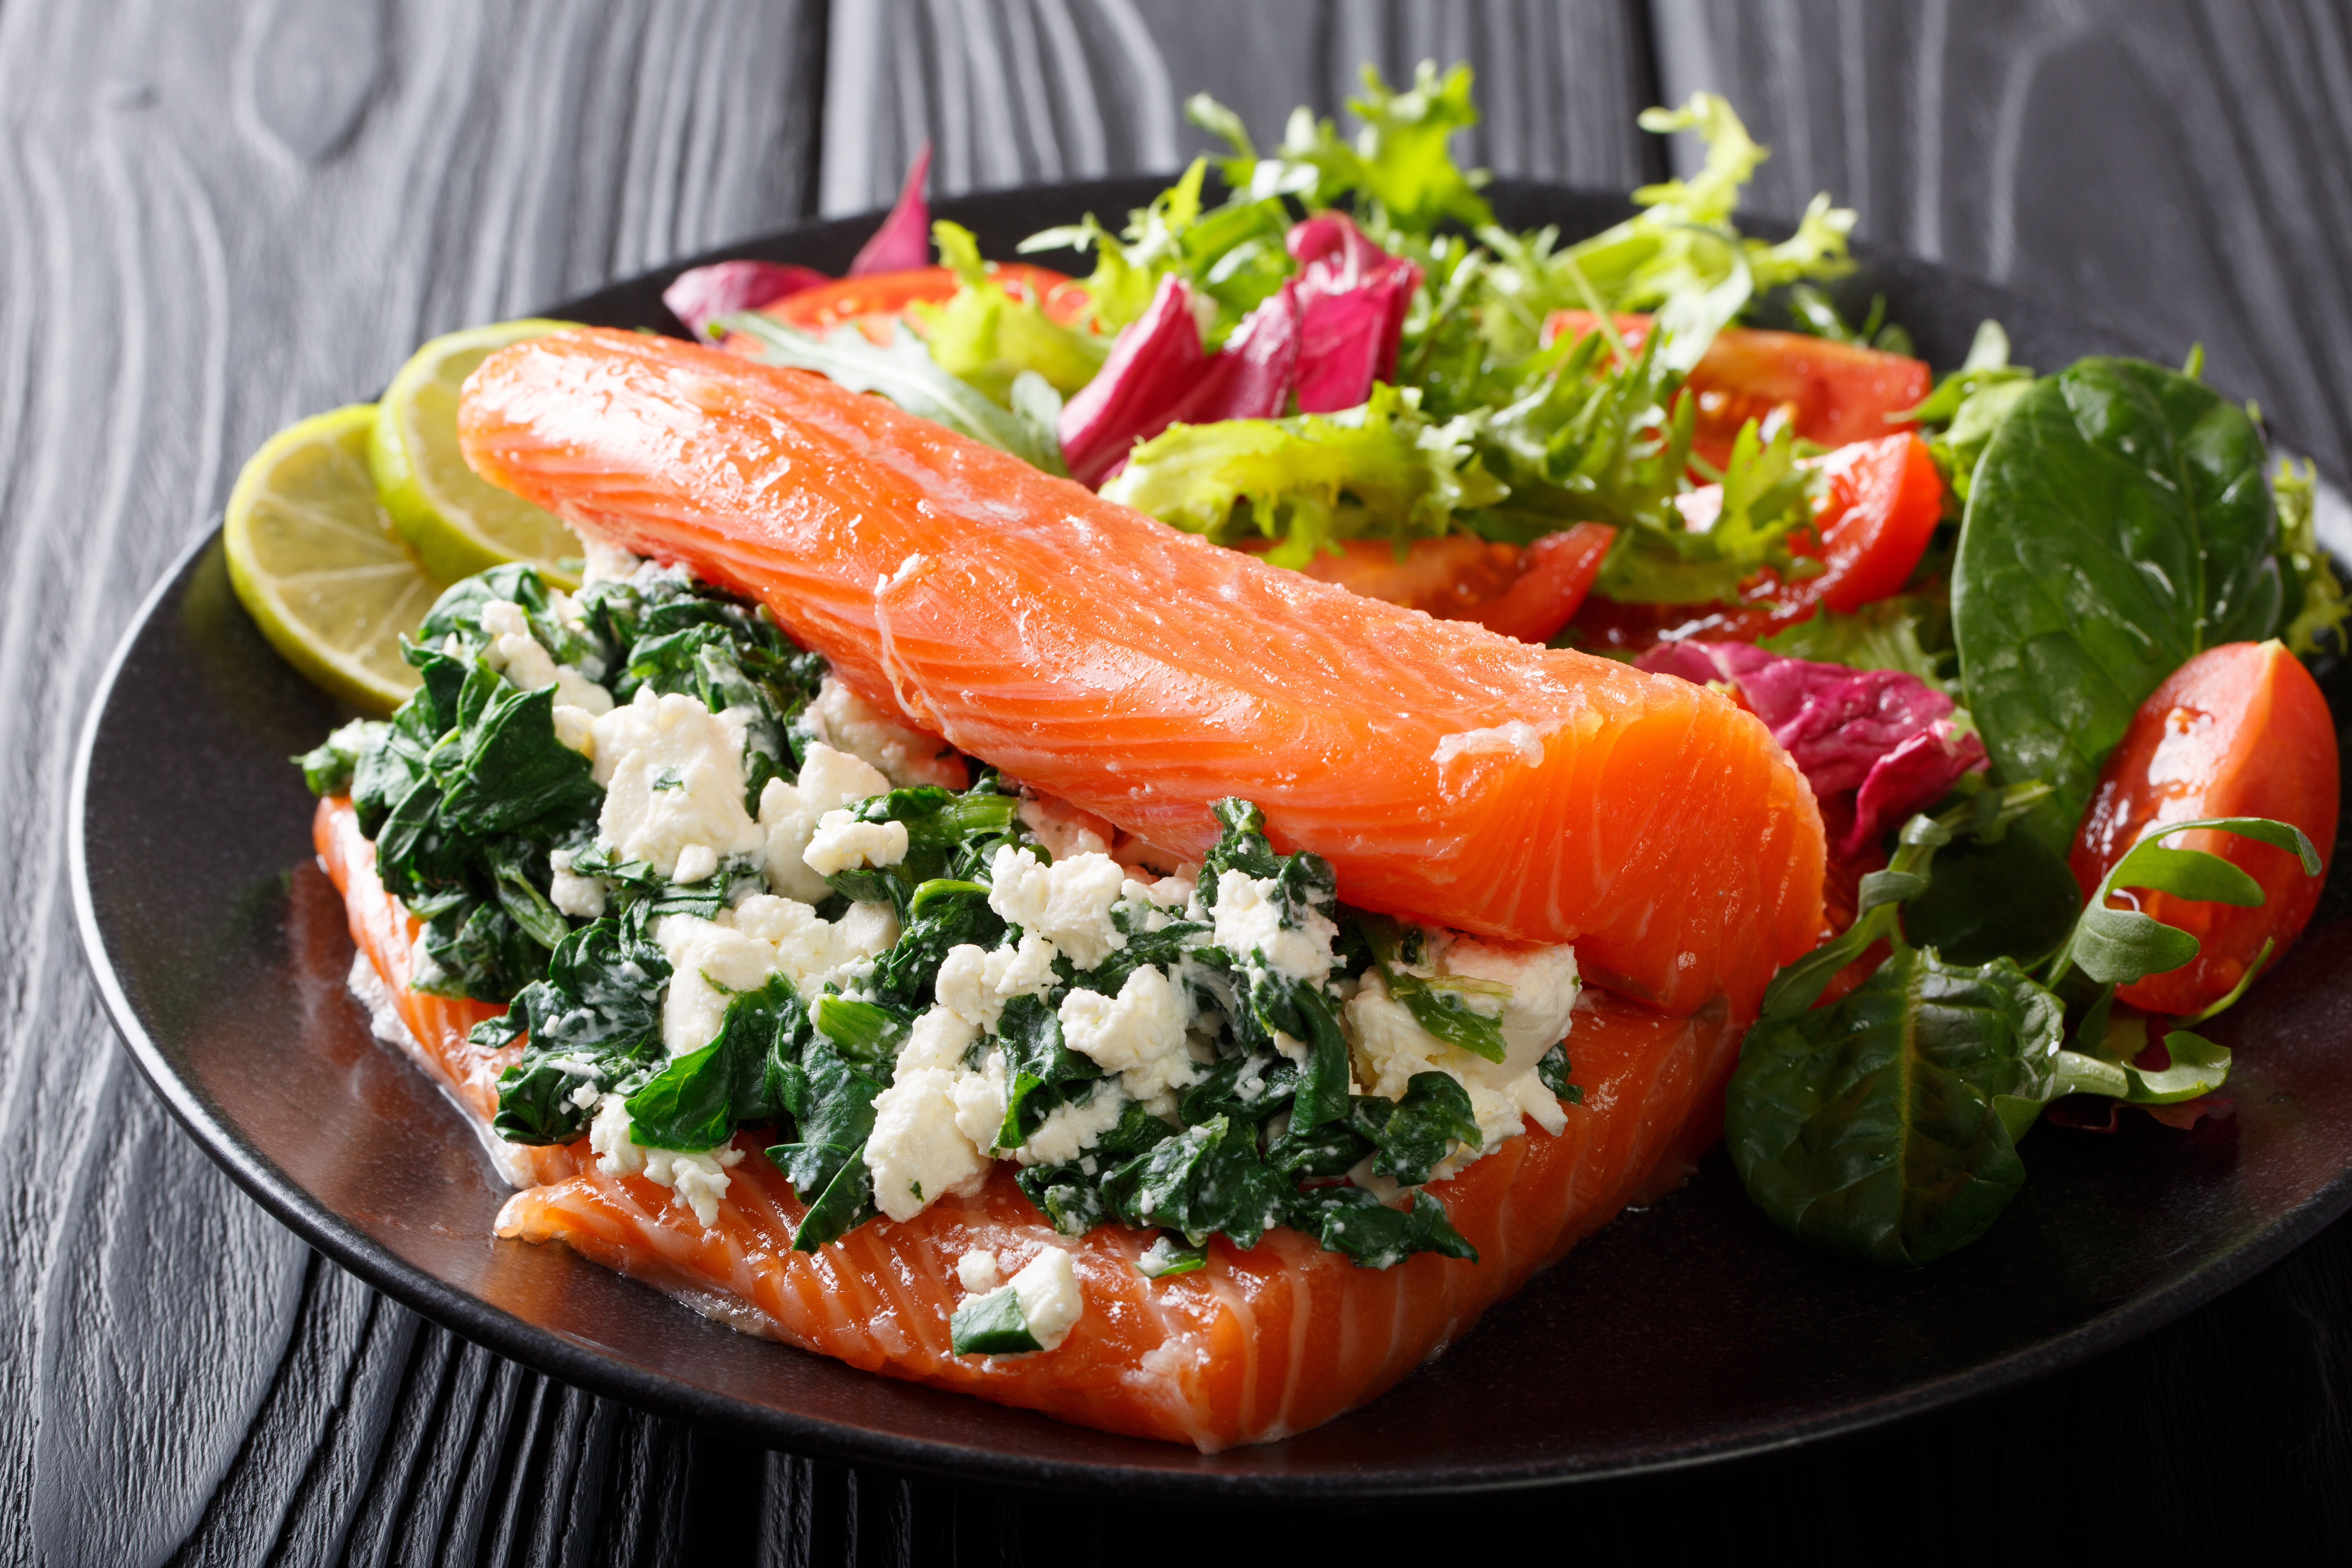 Sunday Lunch:  Salmon stuffed with spinach and feta